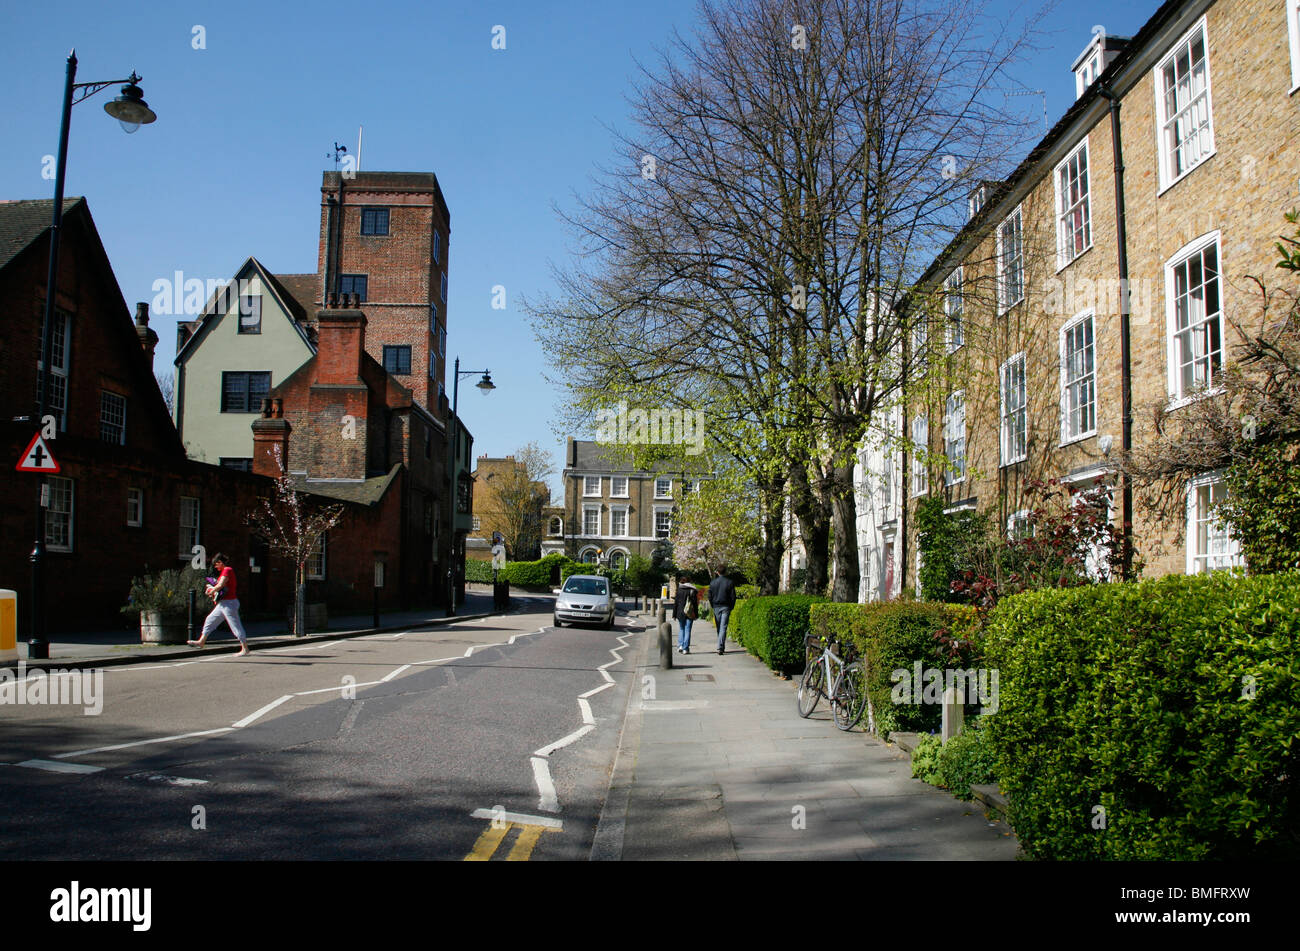 Looking up Canonbury Place to Canonbury Tower, Canonbury, London, UK - Stock Image